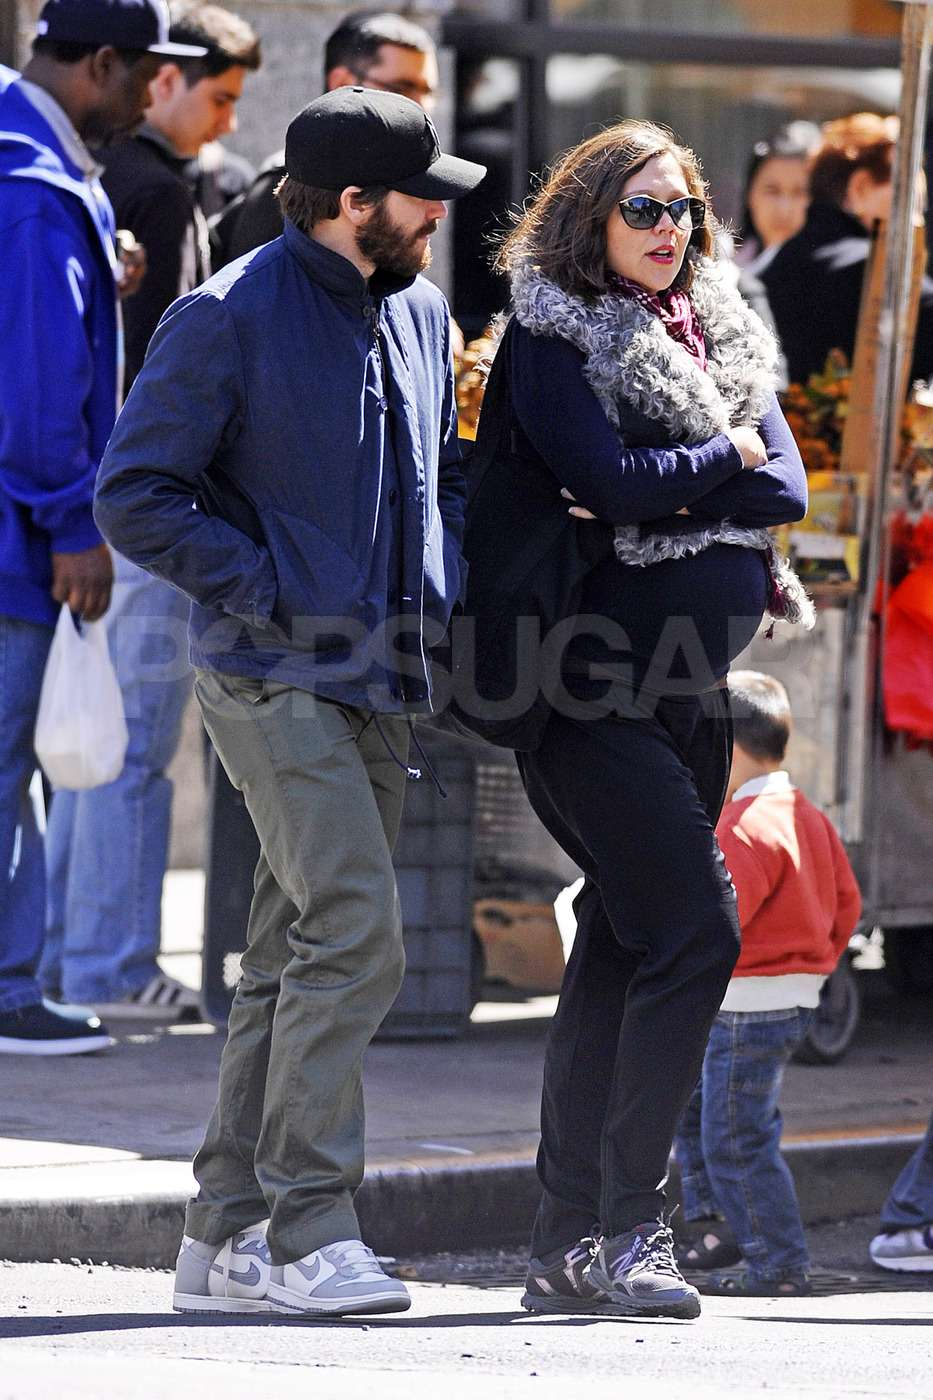 Jake Gyllenhaal chatted with pregnant sister Maggie Gyllenhaal as they took a stroll around NYC.